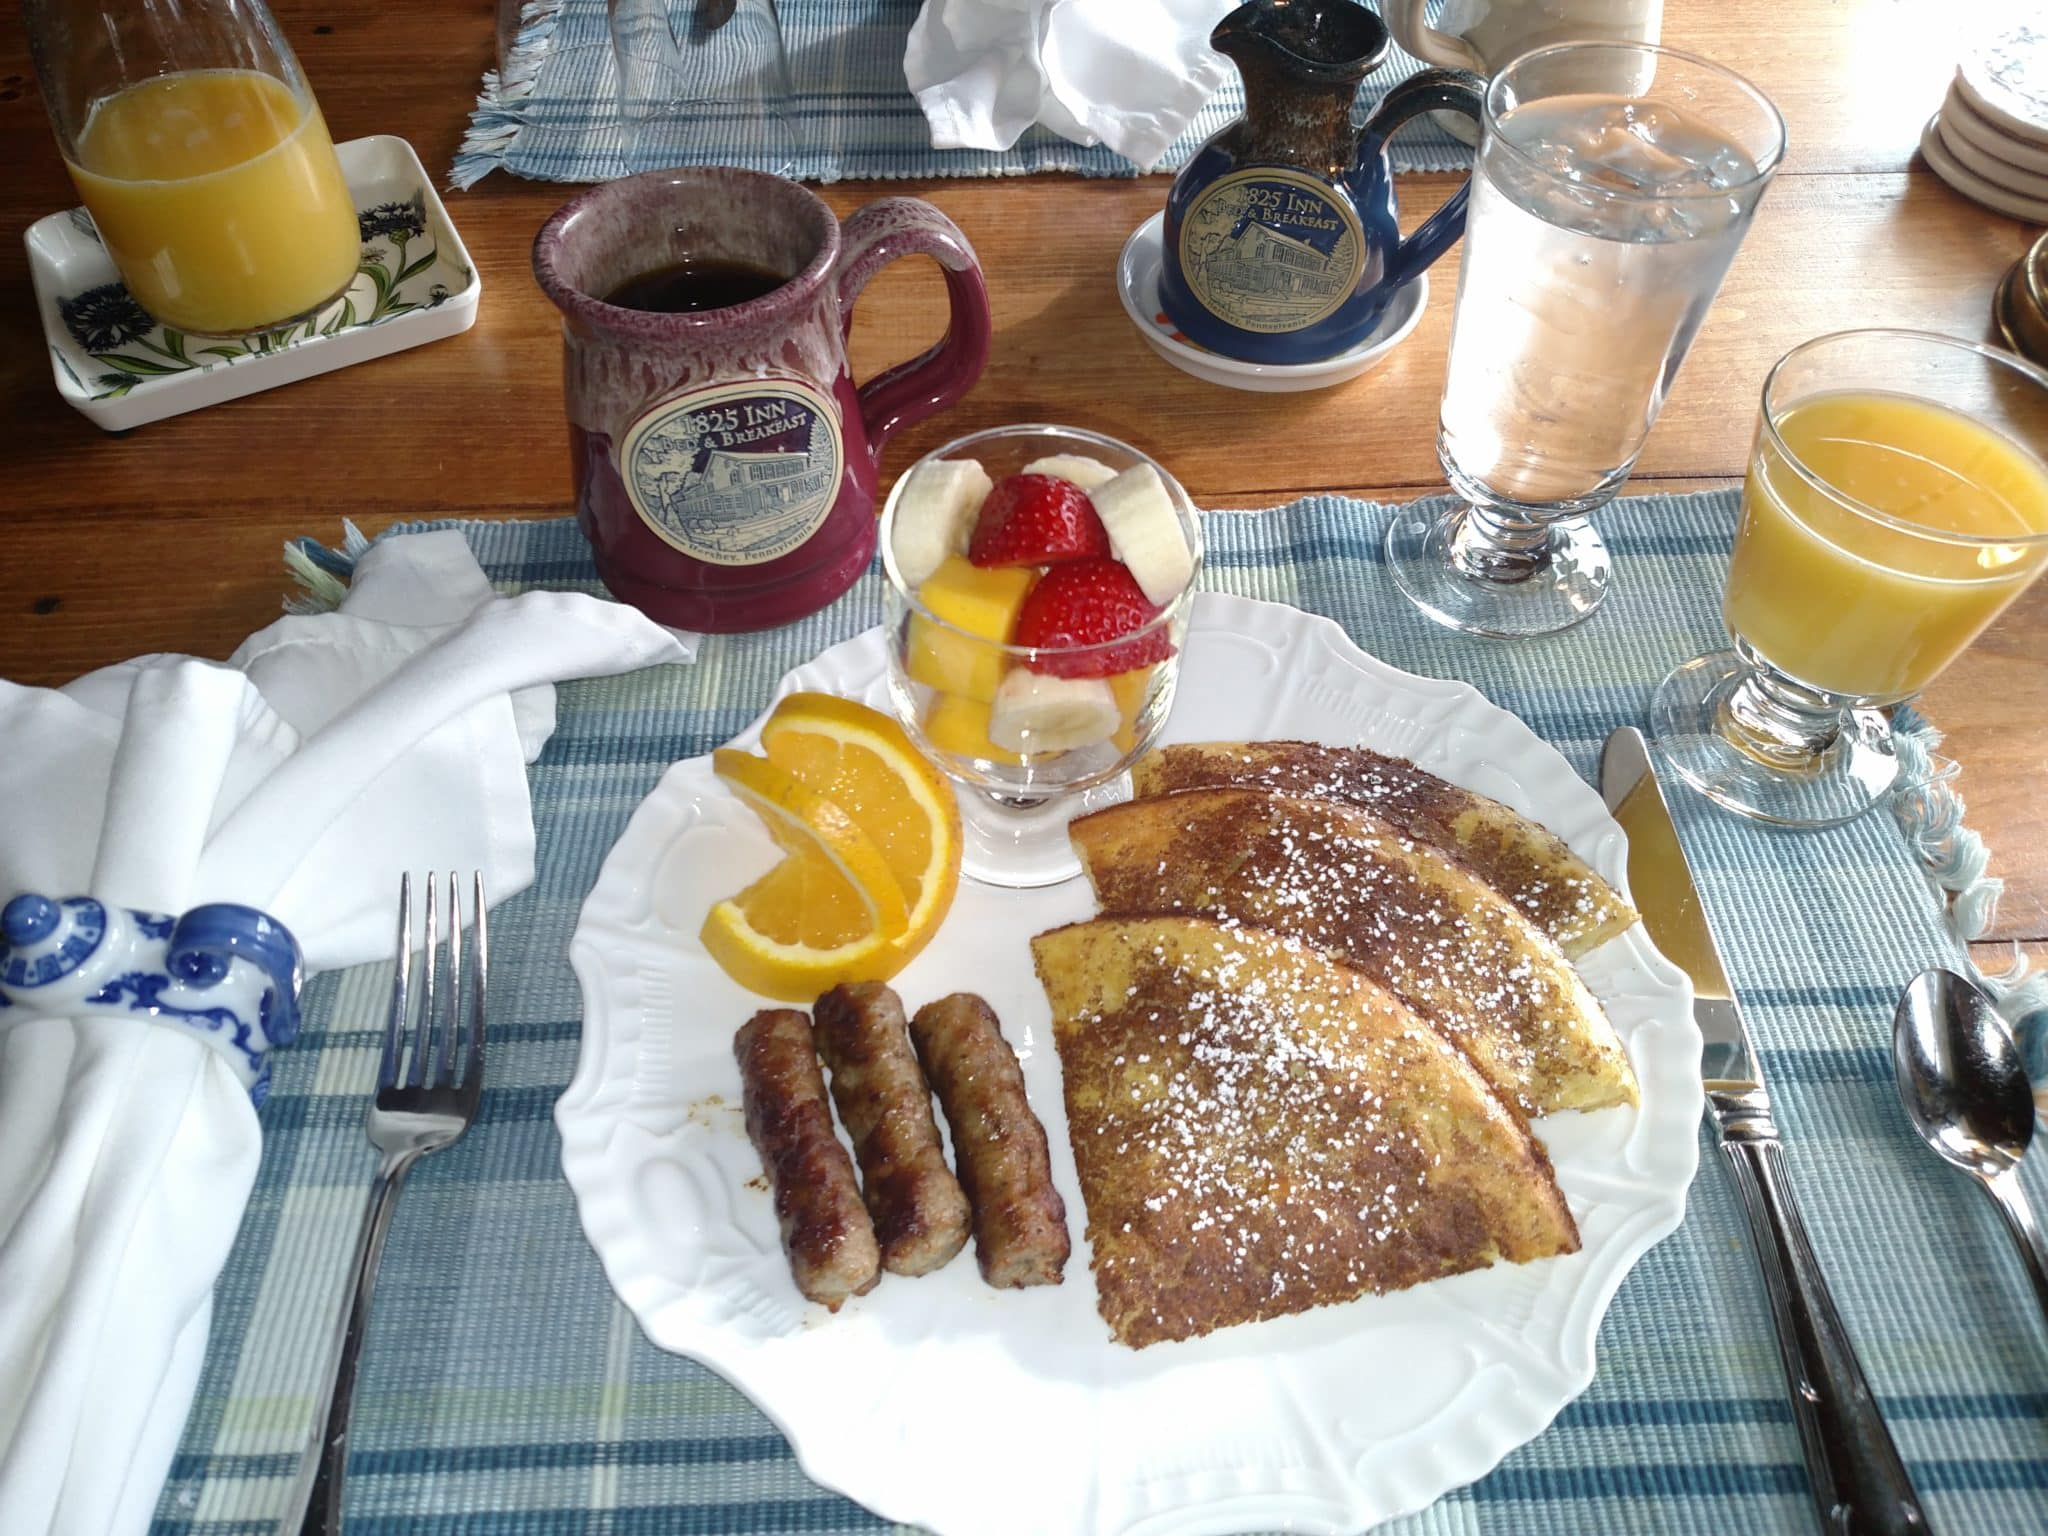 plated breakfast of pancakes, sausage, and fruit